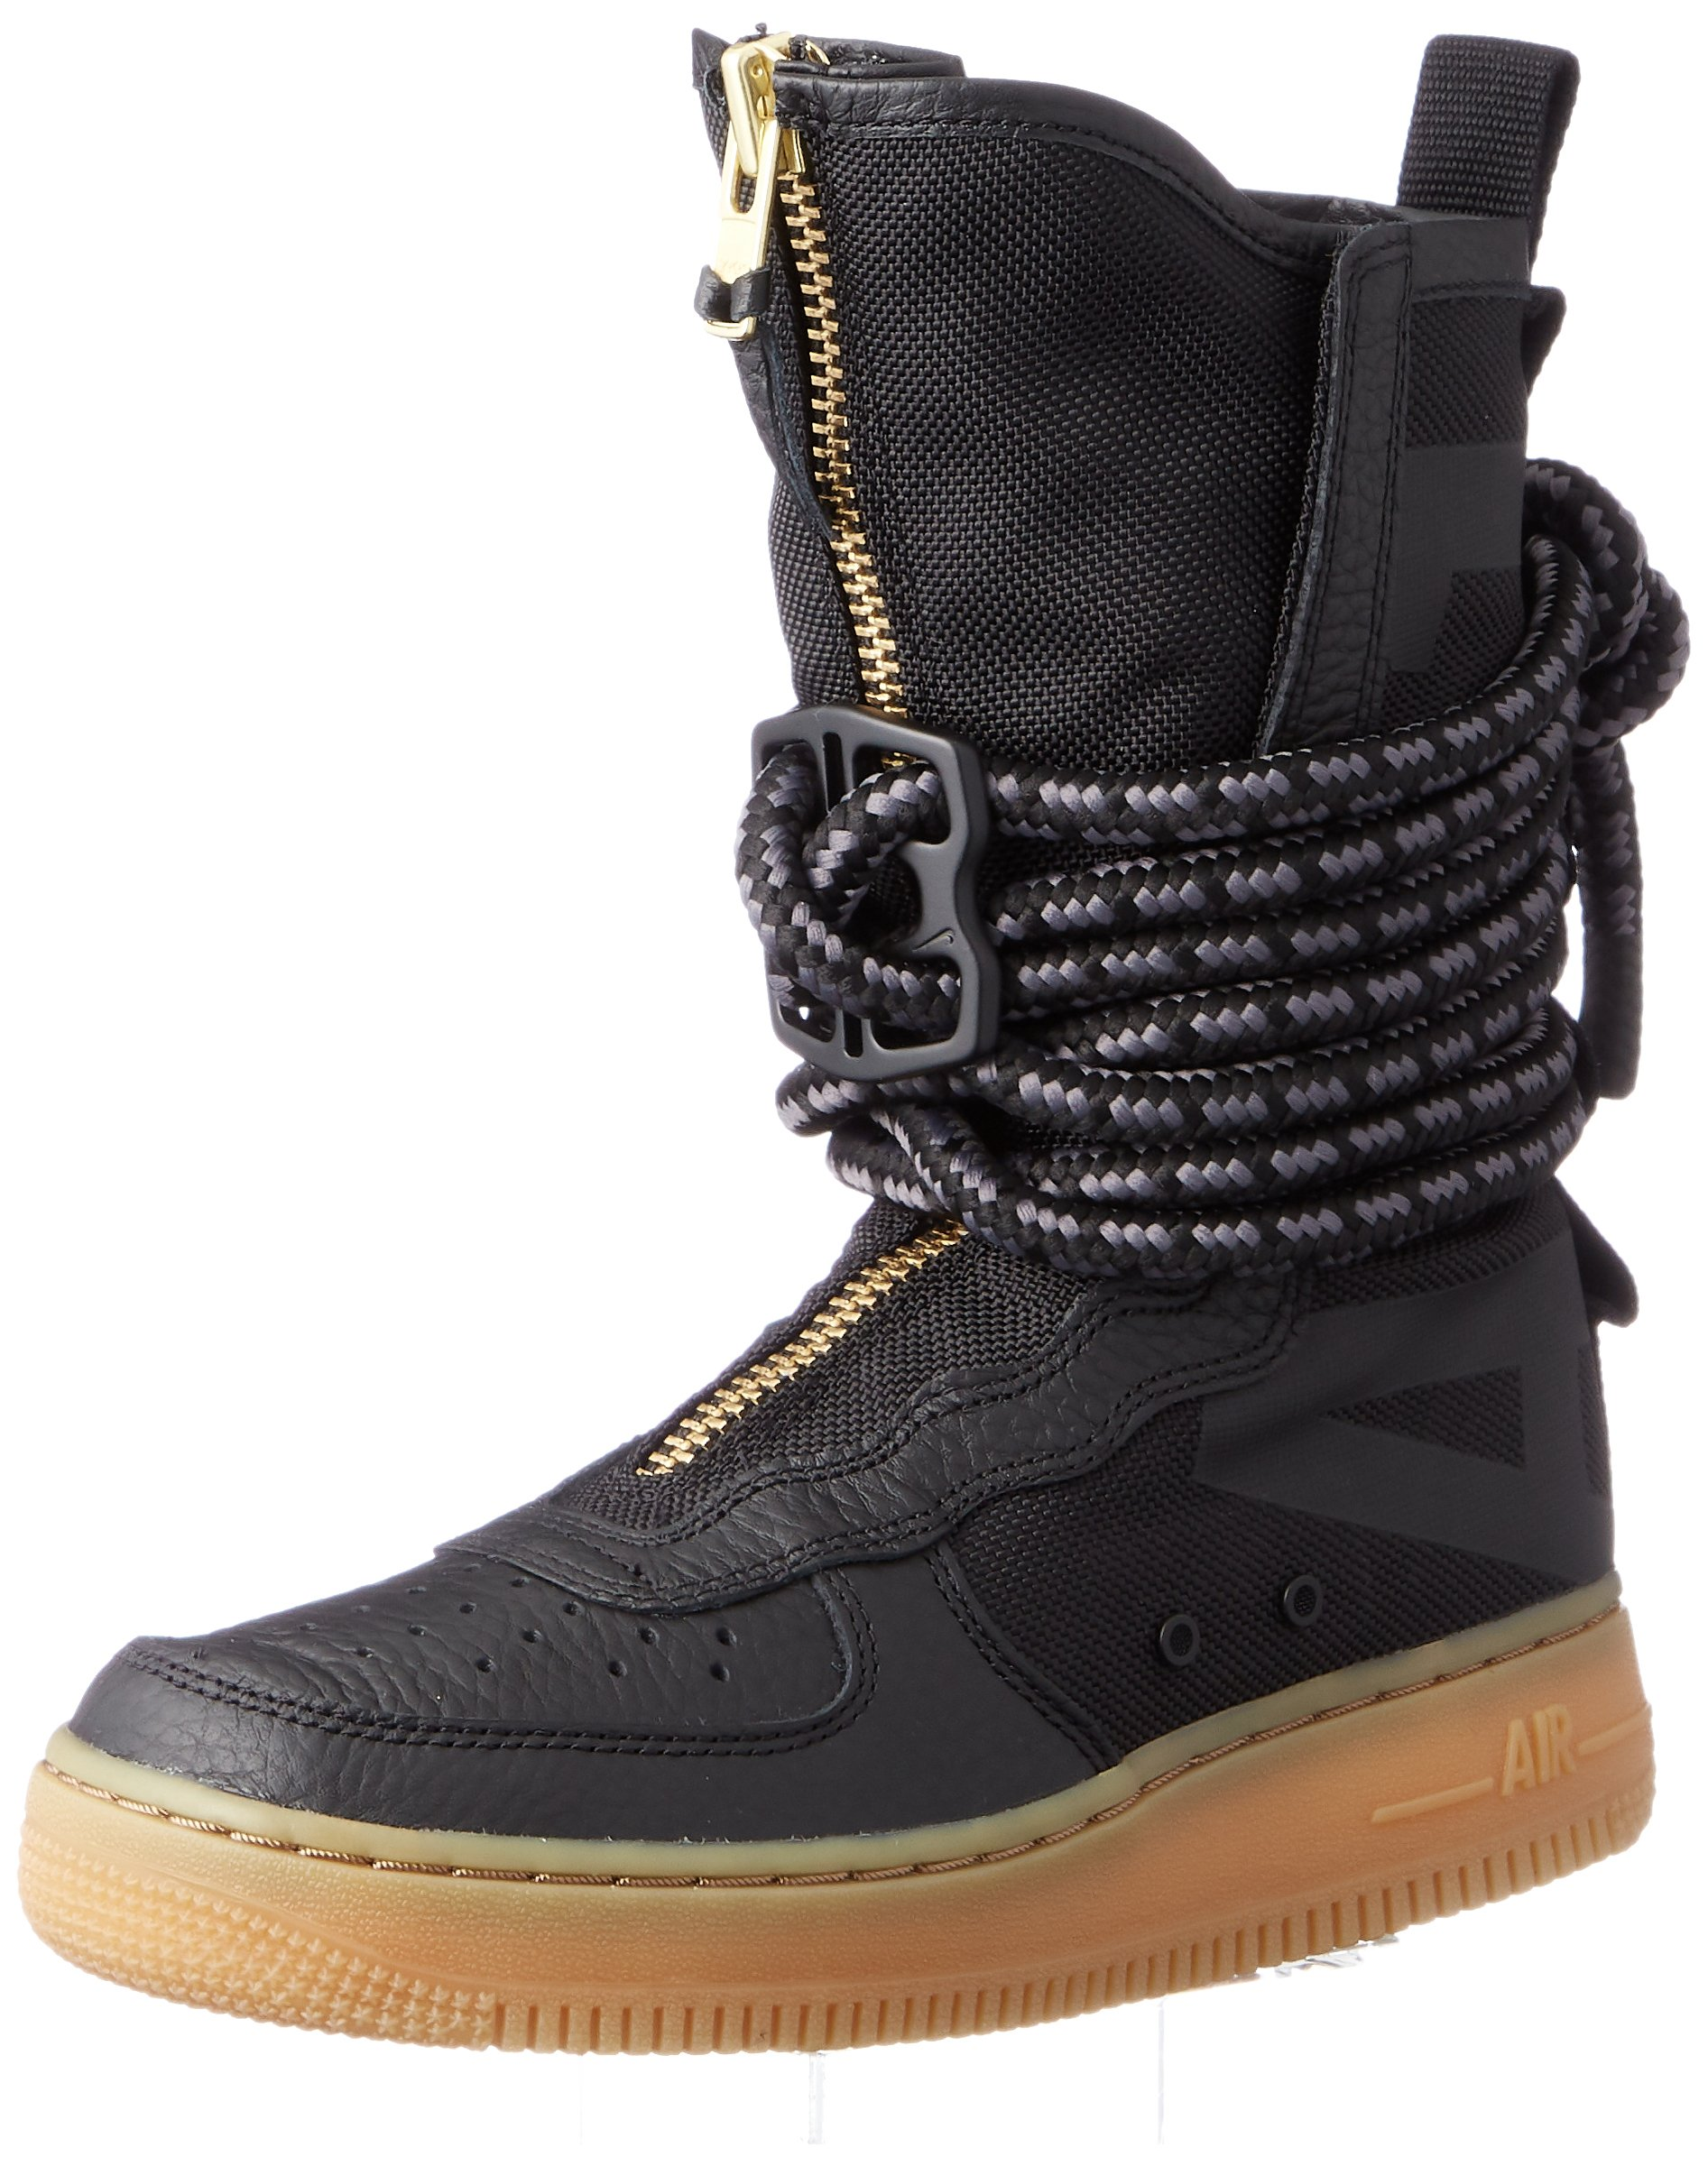 NIKE SF Air Force 1 High Top Womens Boots Black/Gum Light Brown/Black aa3965-001 (6 B(M) US)